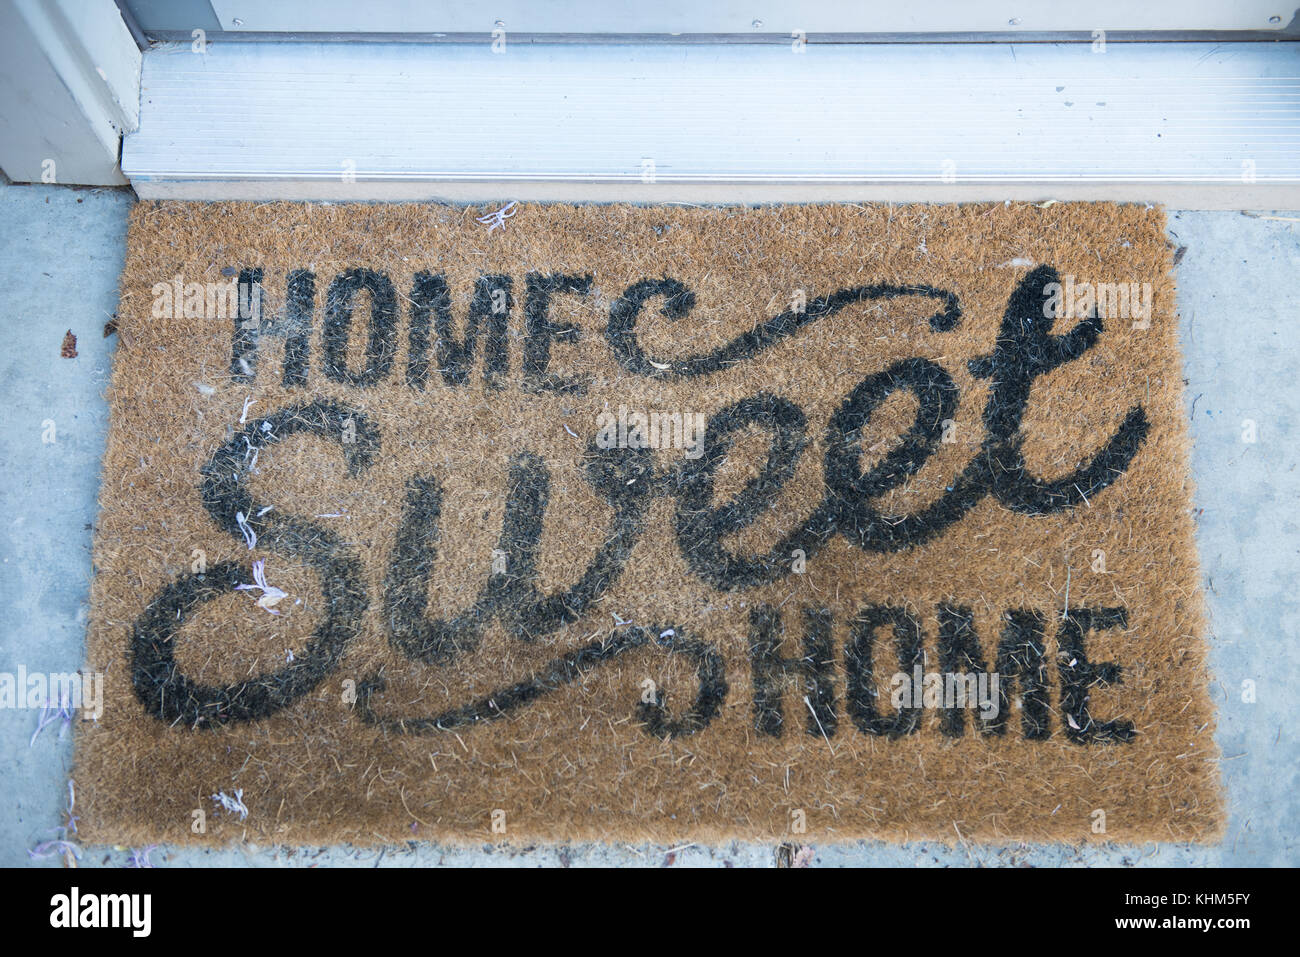 Home Sweet Home Welcome Mat in front of Doorway - Stock Image